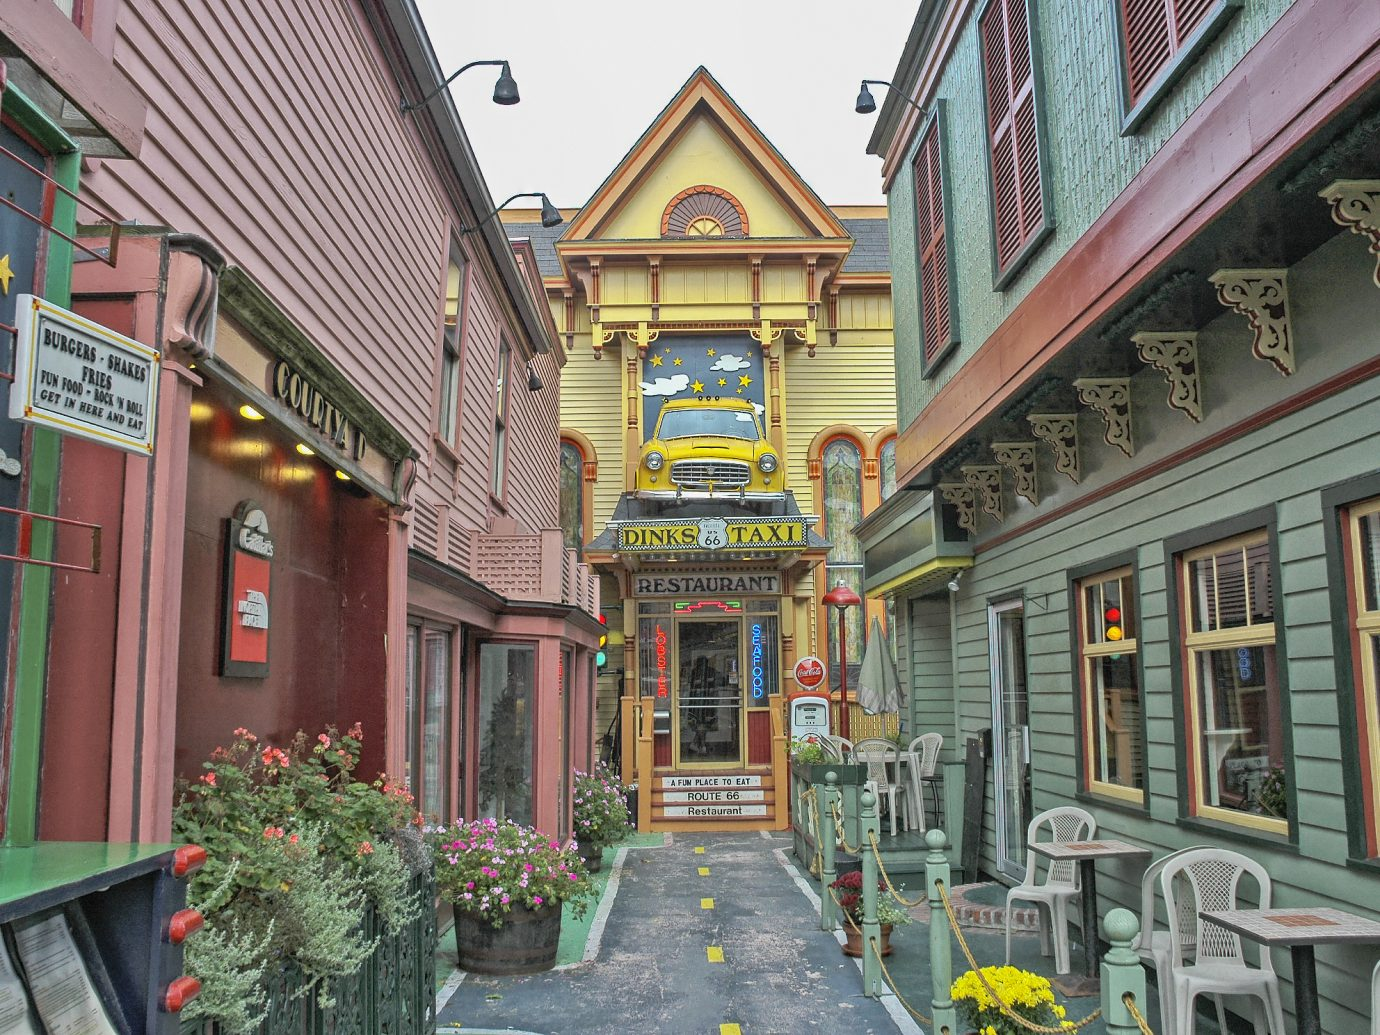 Bar Harbor, Maine, USA - October 12, 2005: This colorful restaurant is located at the end of an alley off the main street in Bar Haror Maine, this colorful bar and restaurant is very popular in the area and a real treat for the patrons to enjoy with their varied menu choices especially for the many visitors to this region during the Autumn where the tourist as well as the locals come to celebrate the season and on this September day it was a pleasure to enjoy.